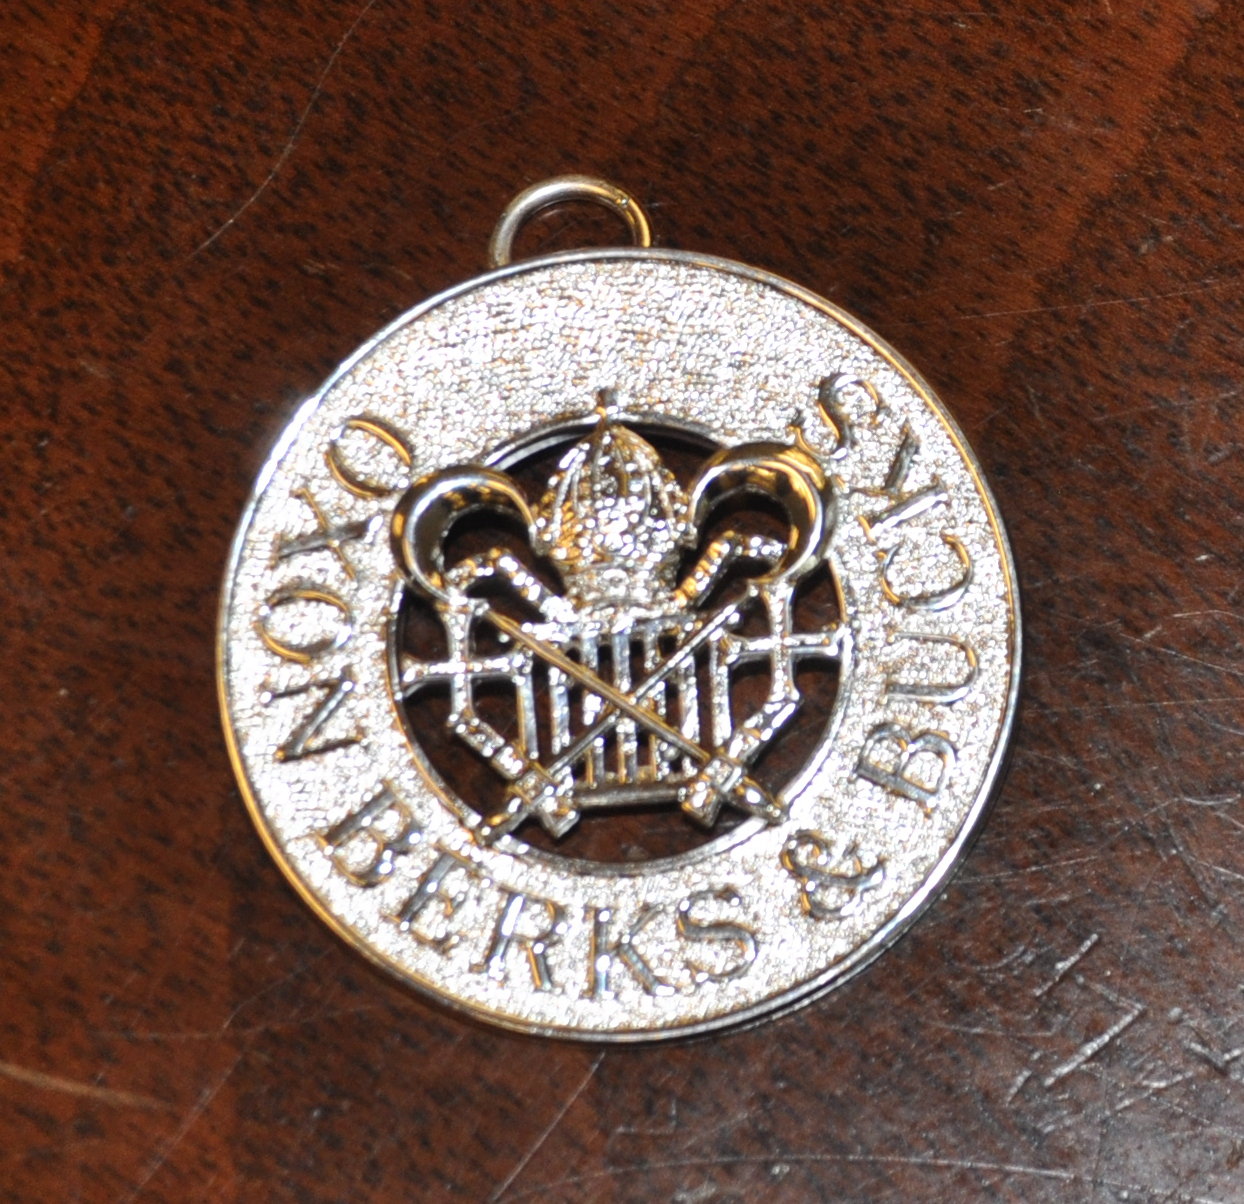 Allied Masonic Degree - District Grand Officers Collar Jewel